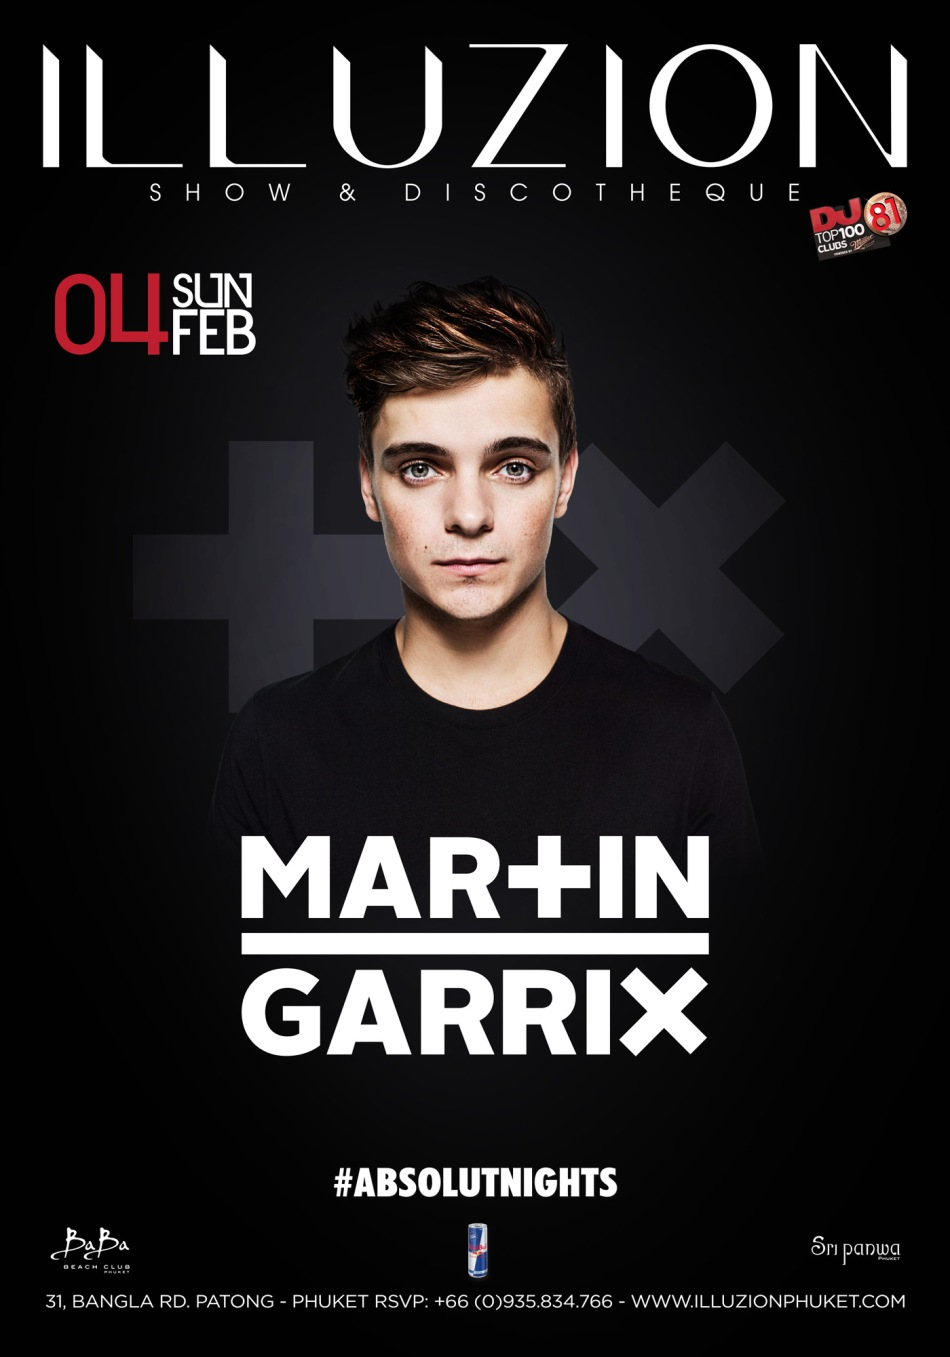 Martin Garrix at Illuzion